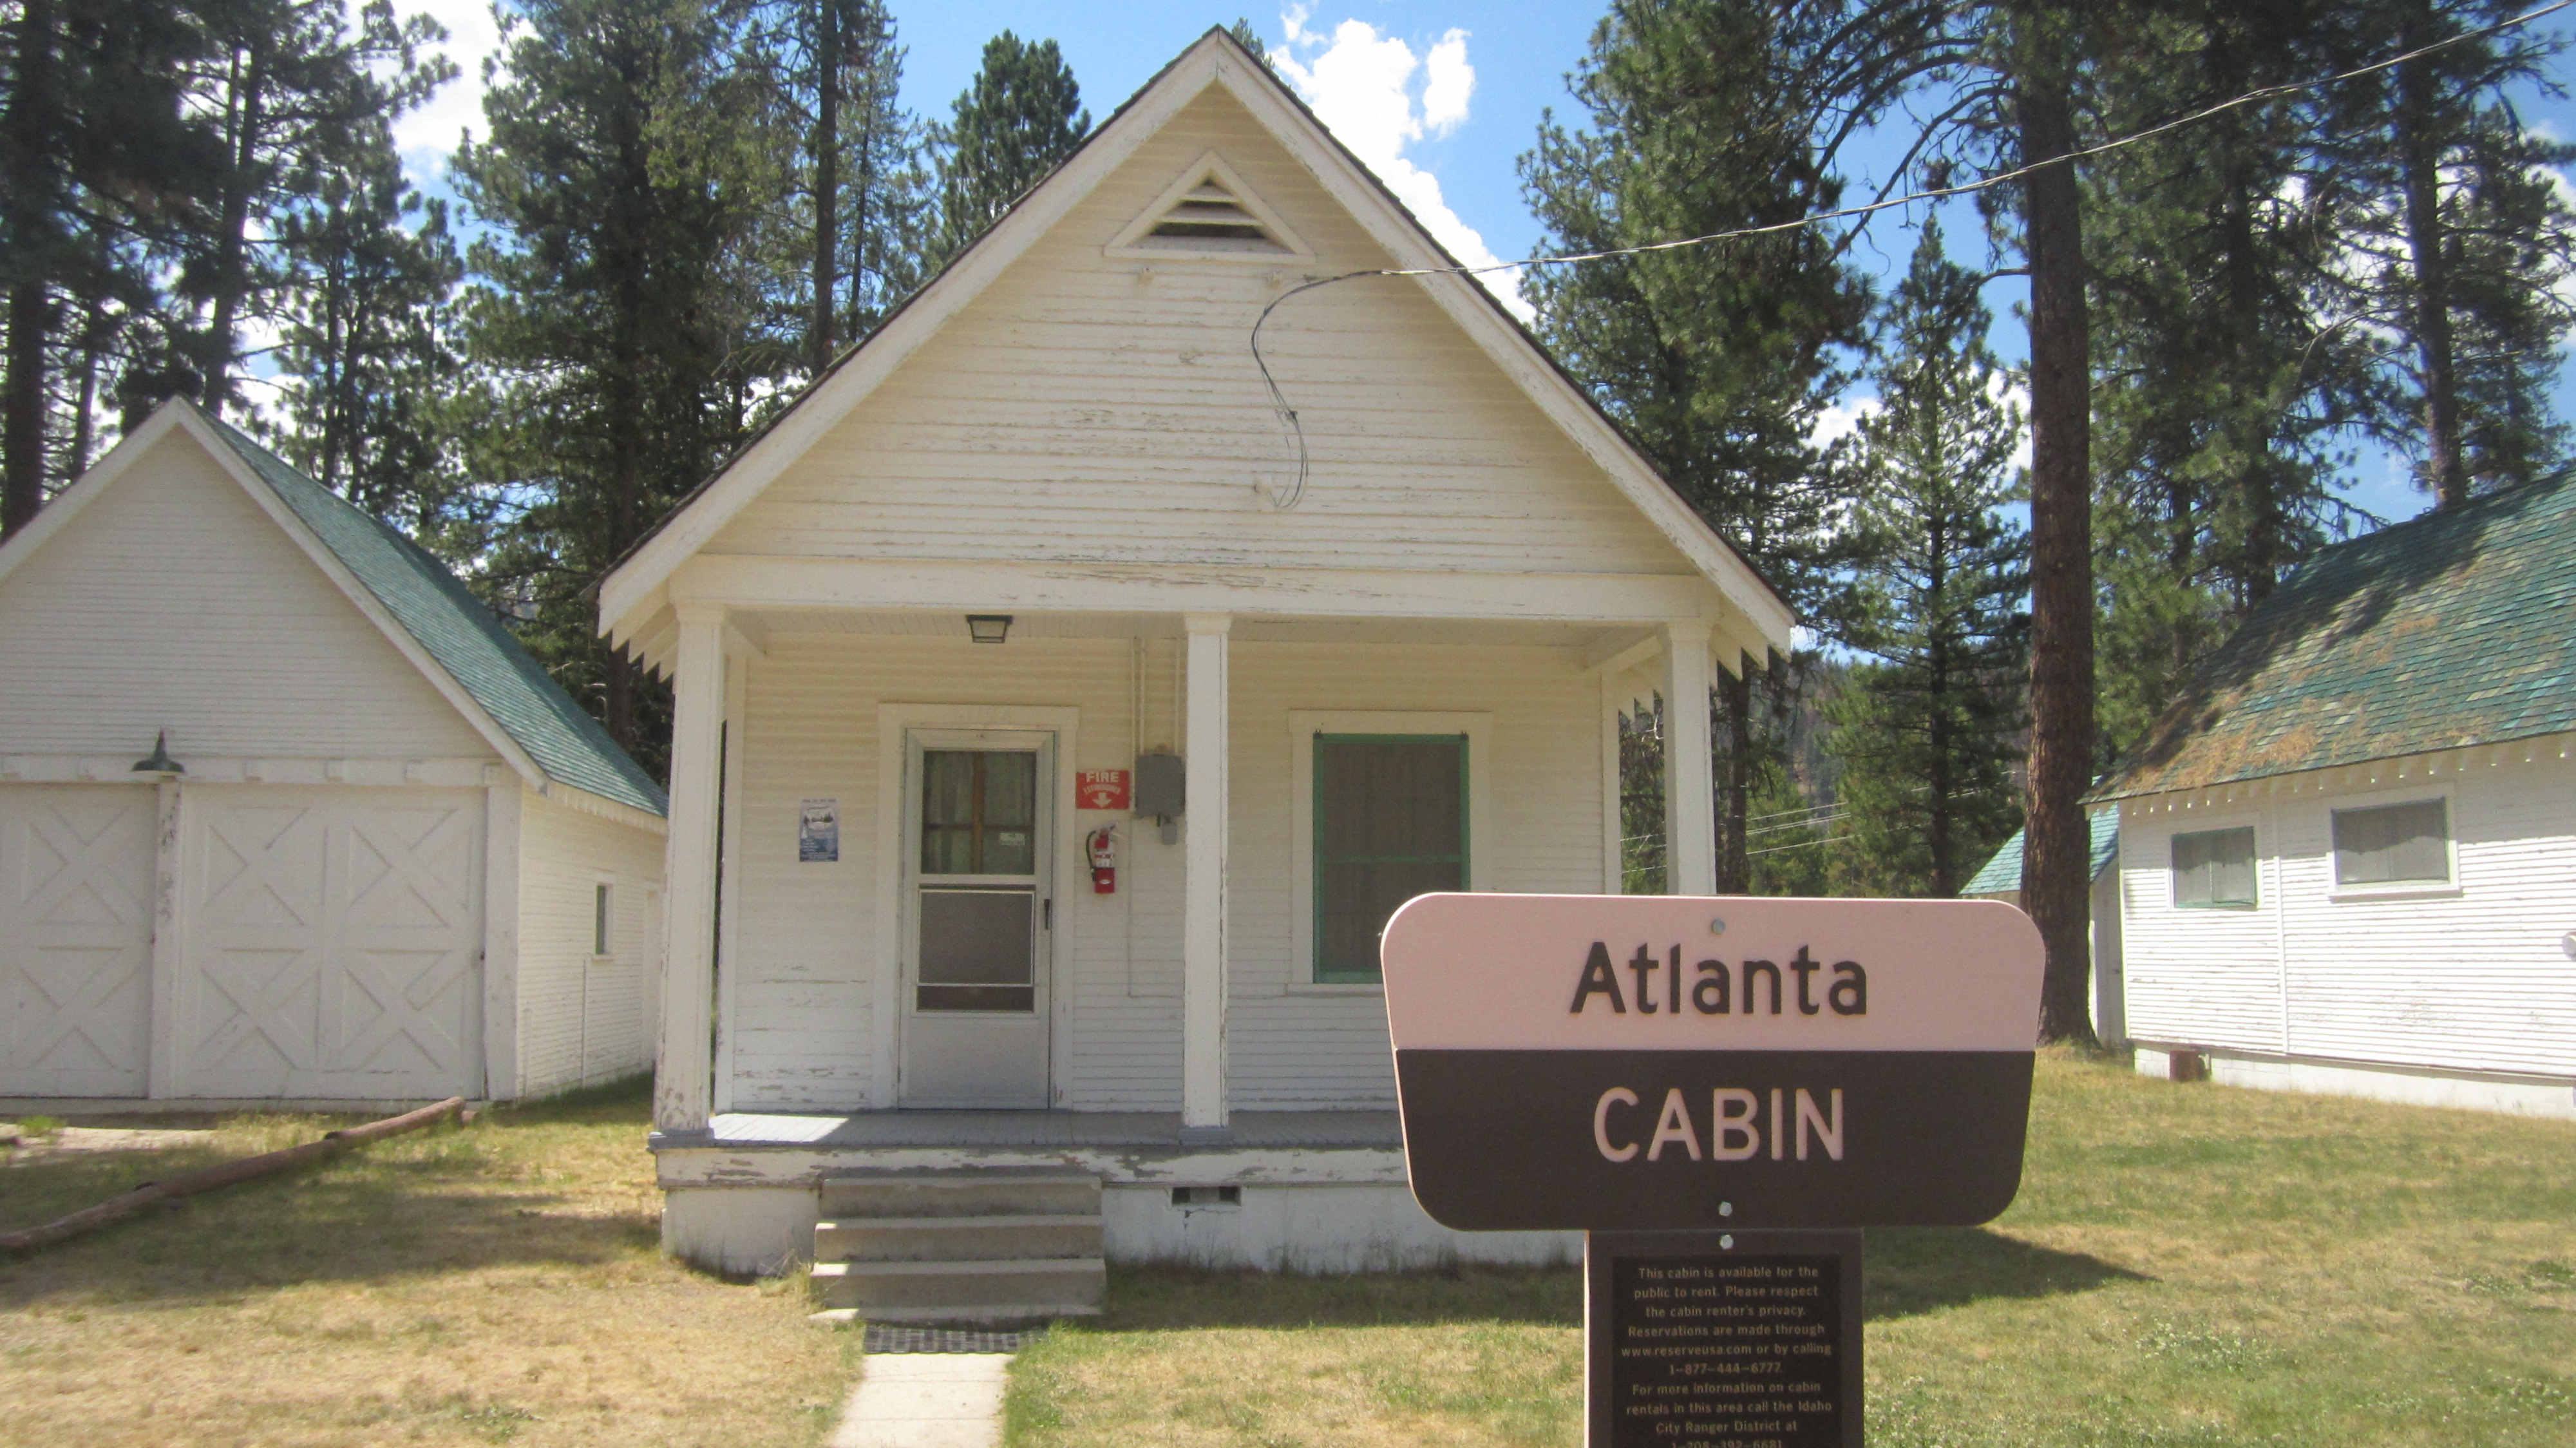 atlanta idaho cabins and locals the world of a kevin